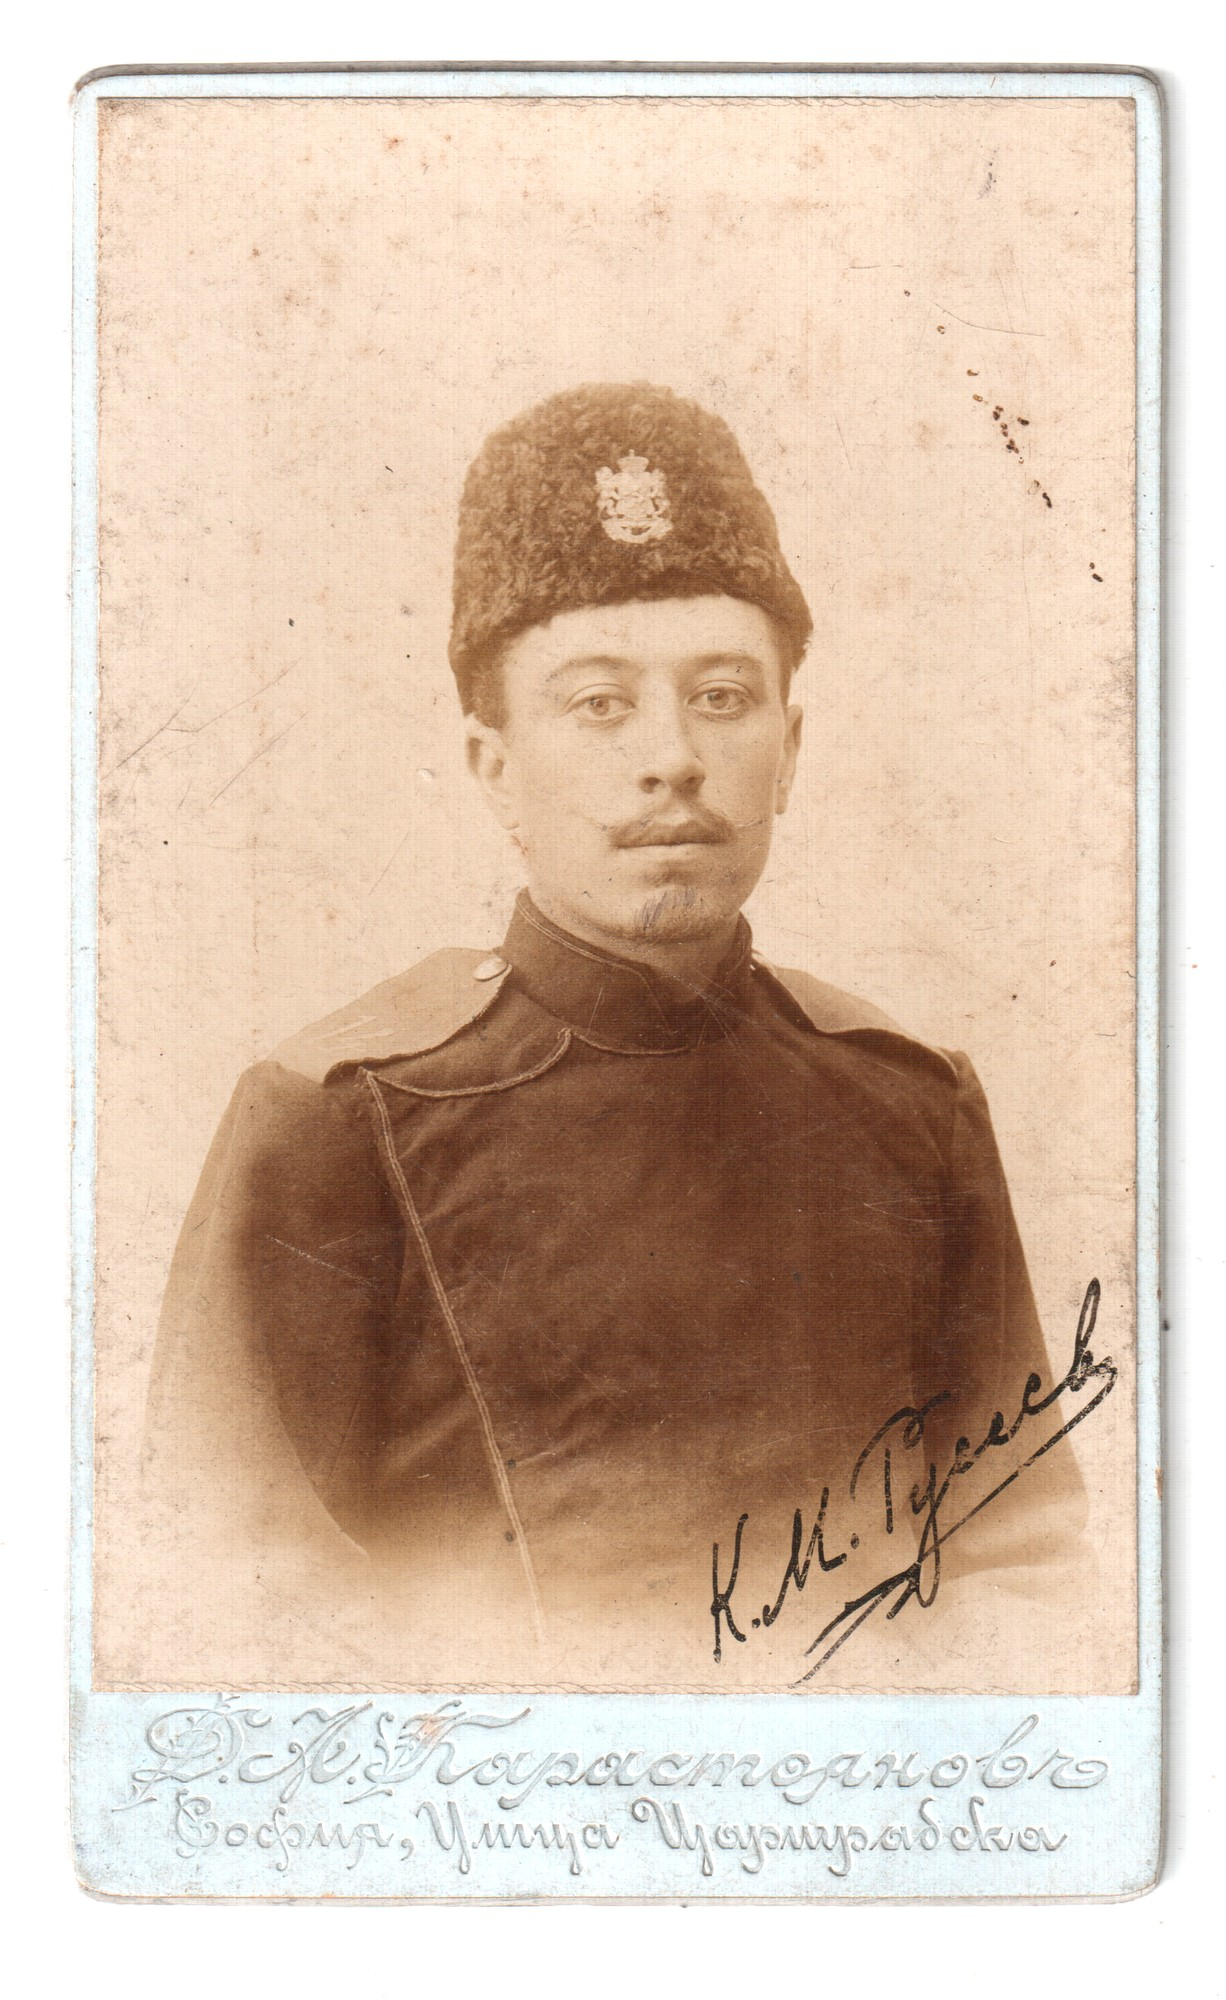 Studio portrait of soldier Rusev, © National Polytechnic Museum, Sofia